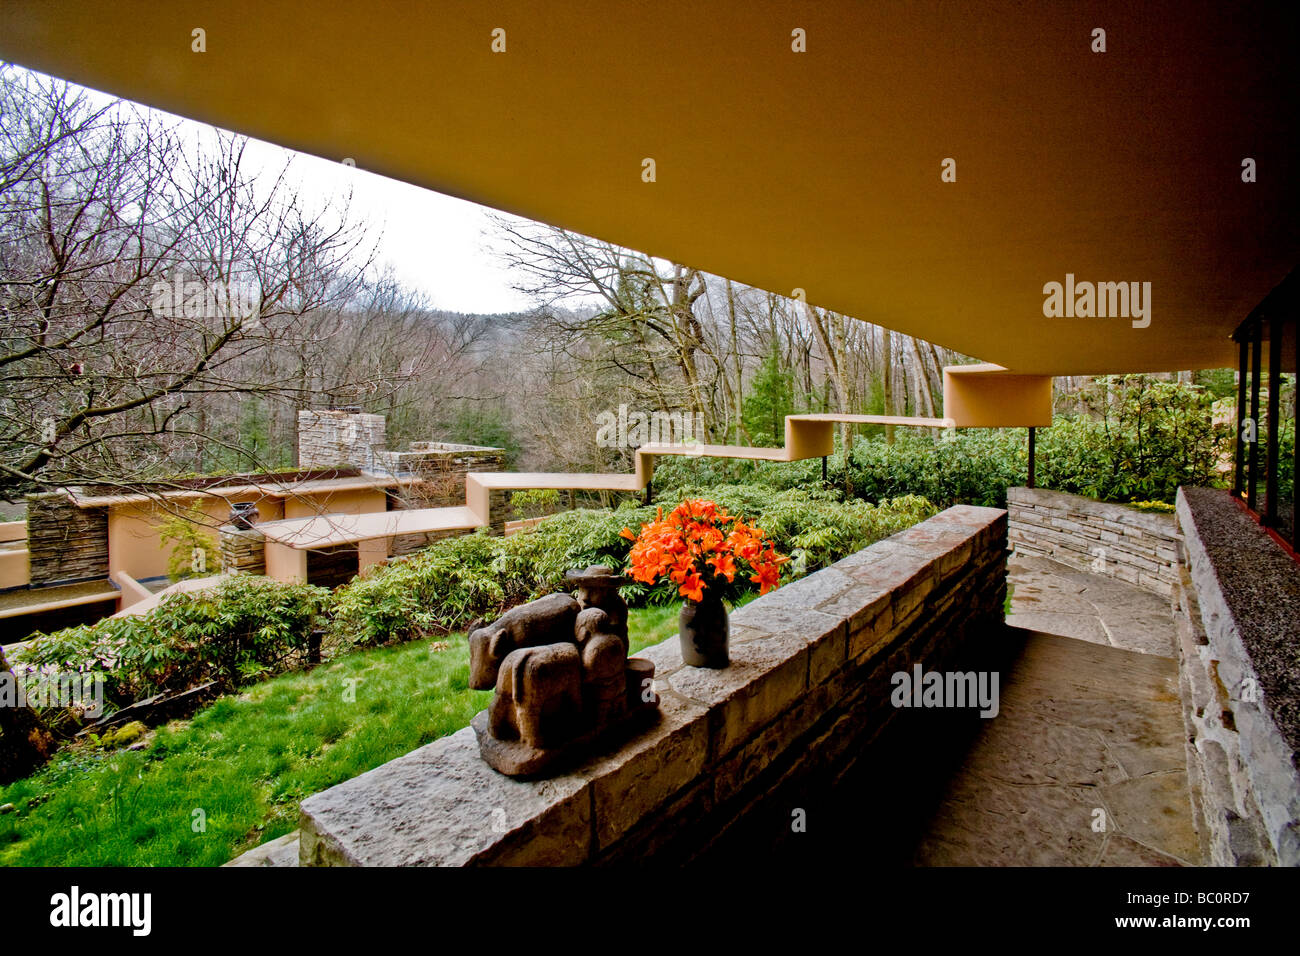 The View From The Fallingwater Guest House Shows The